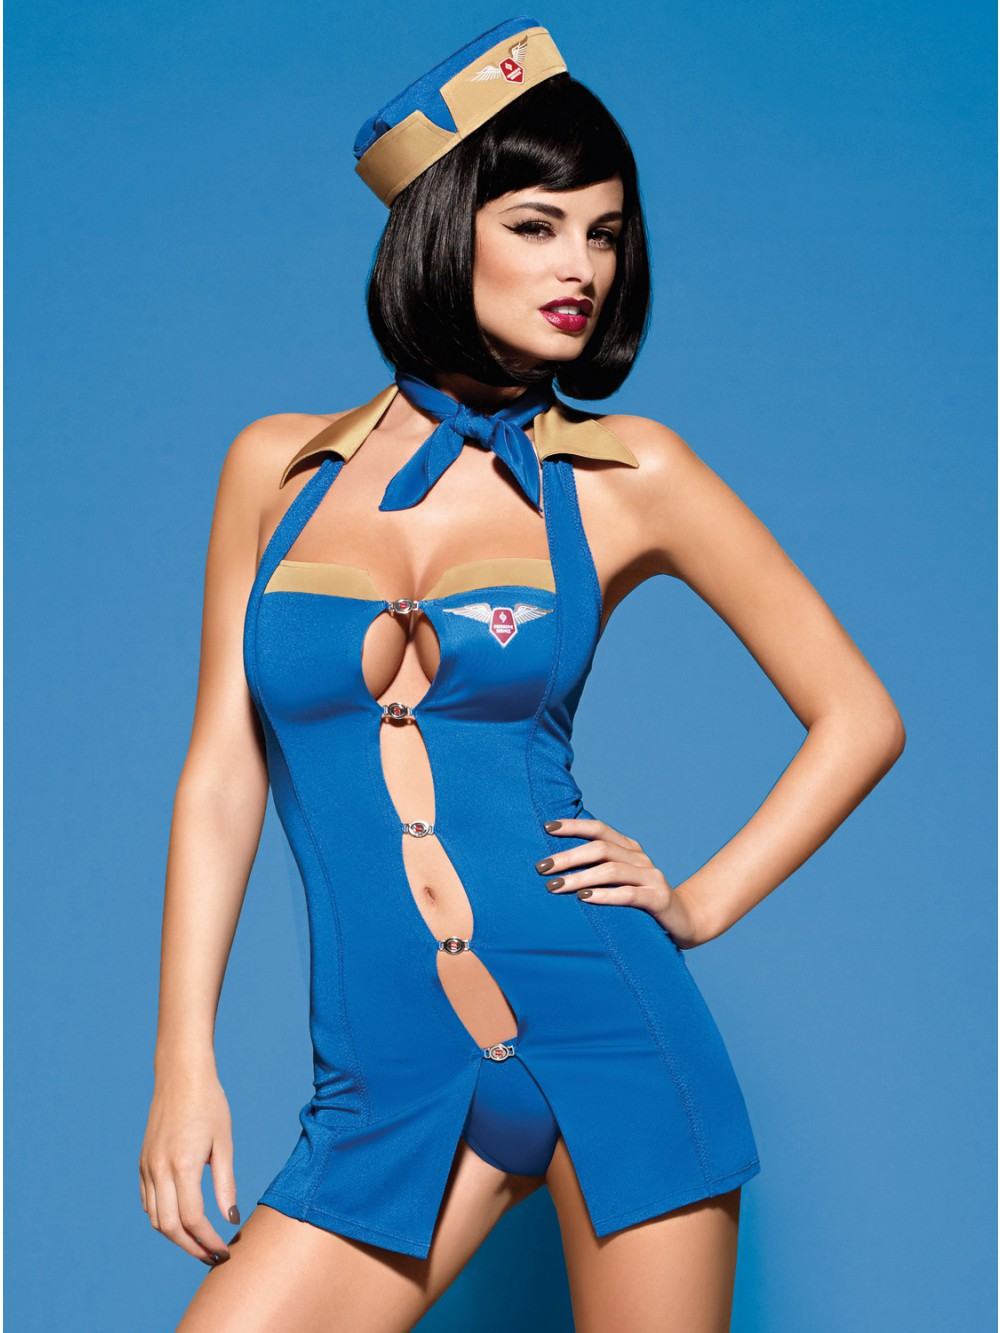 OBSESSIVE AIR HOSTESS COSTUME 5900308554975